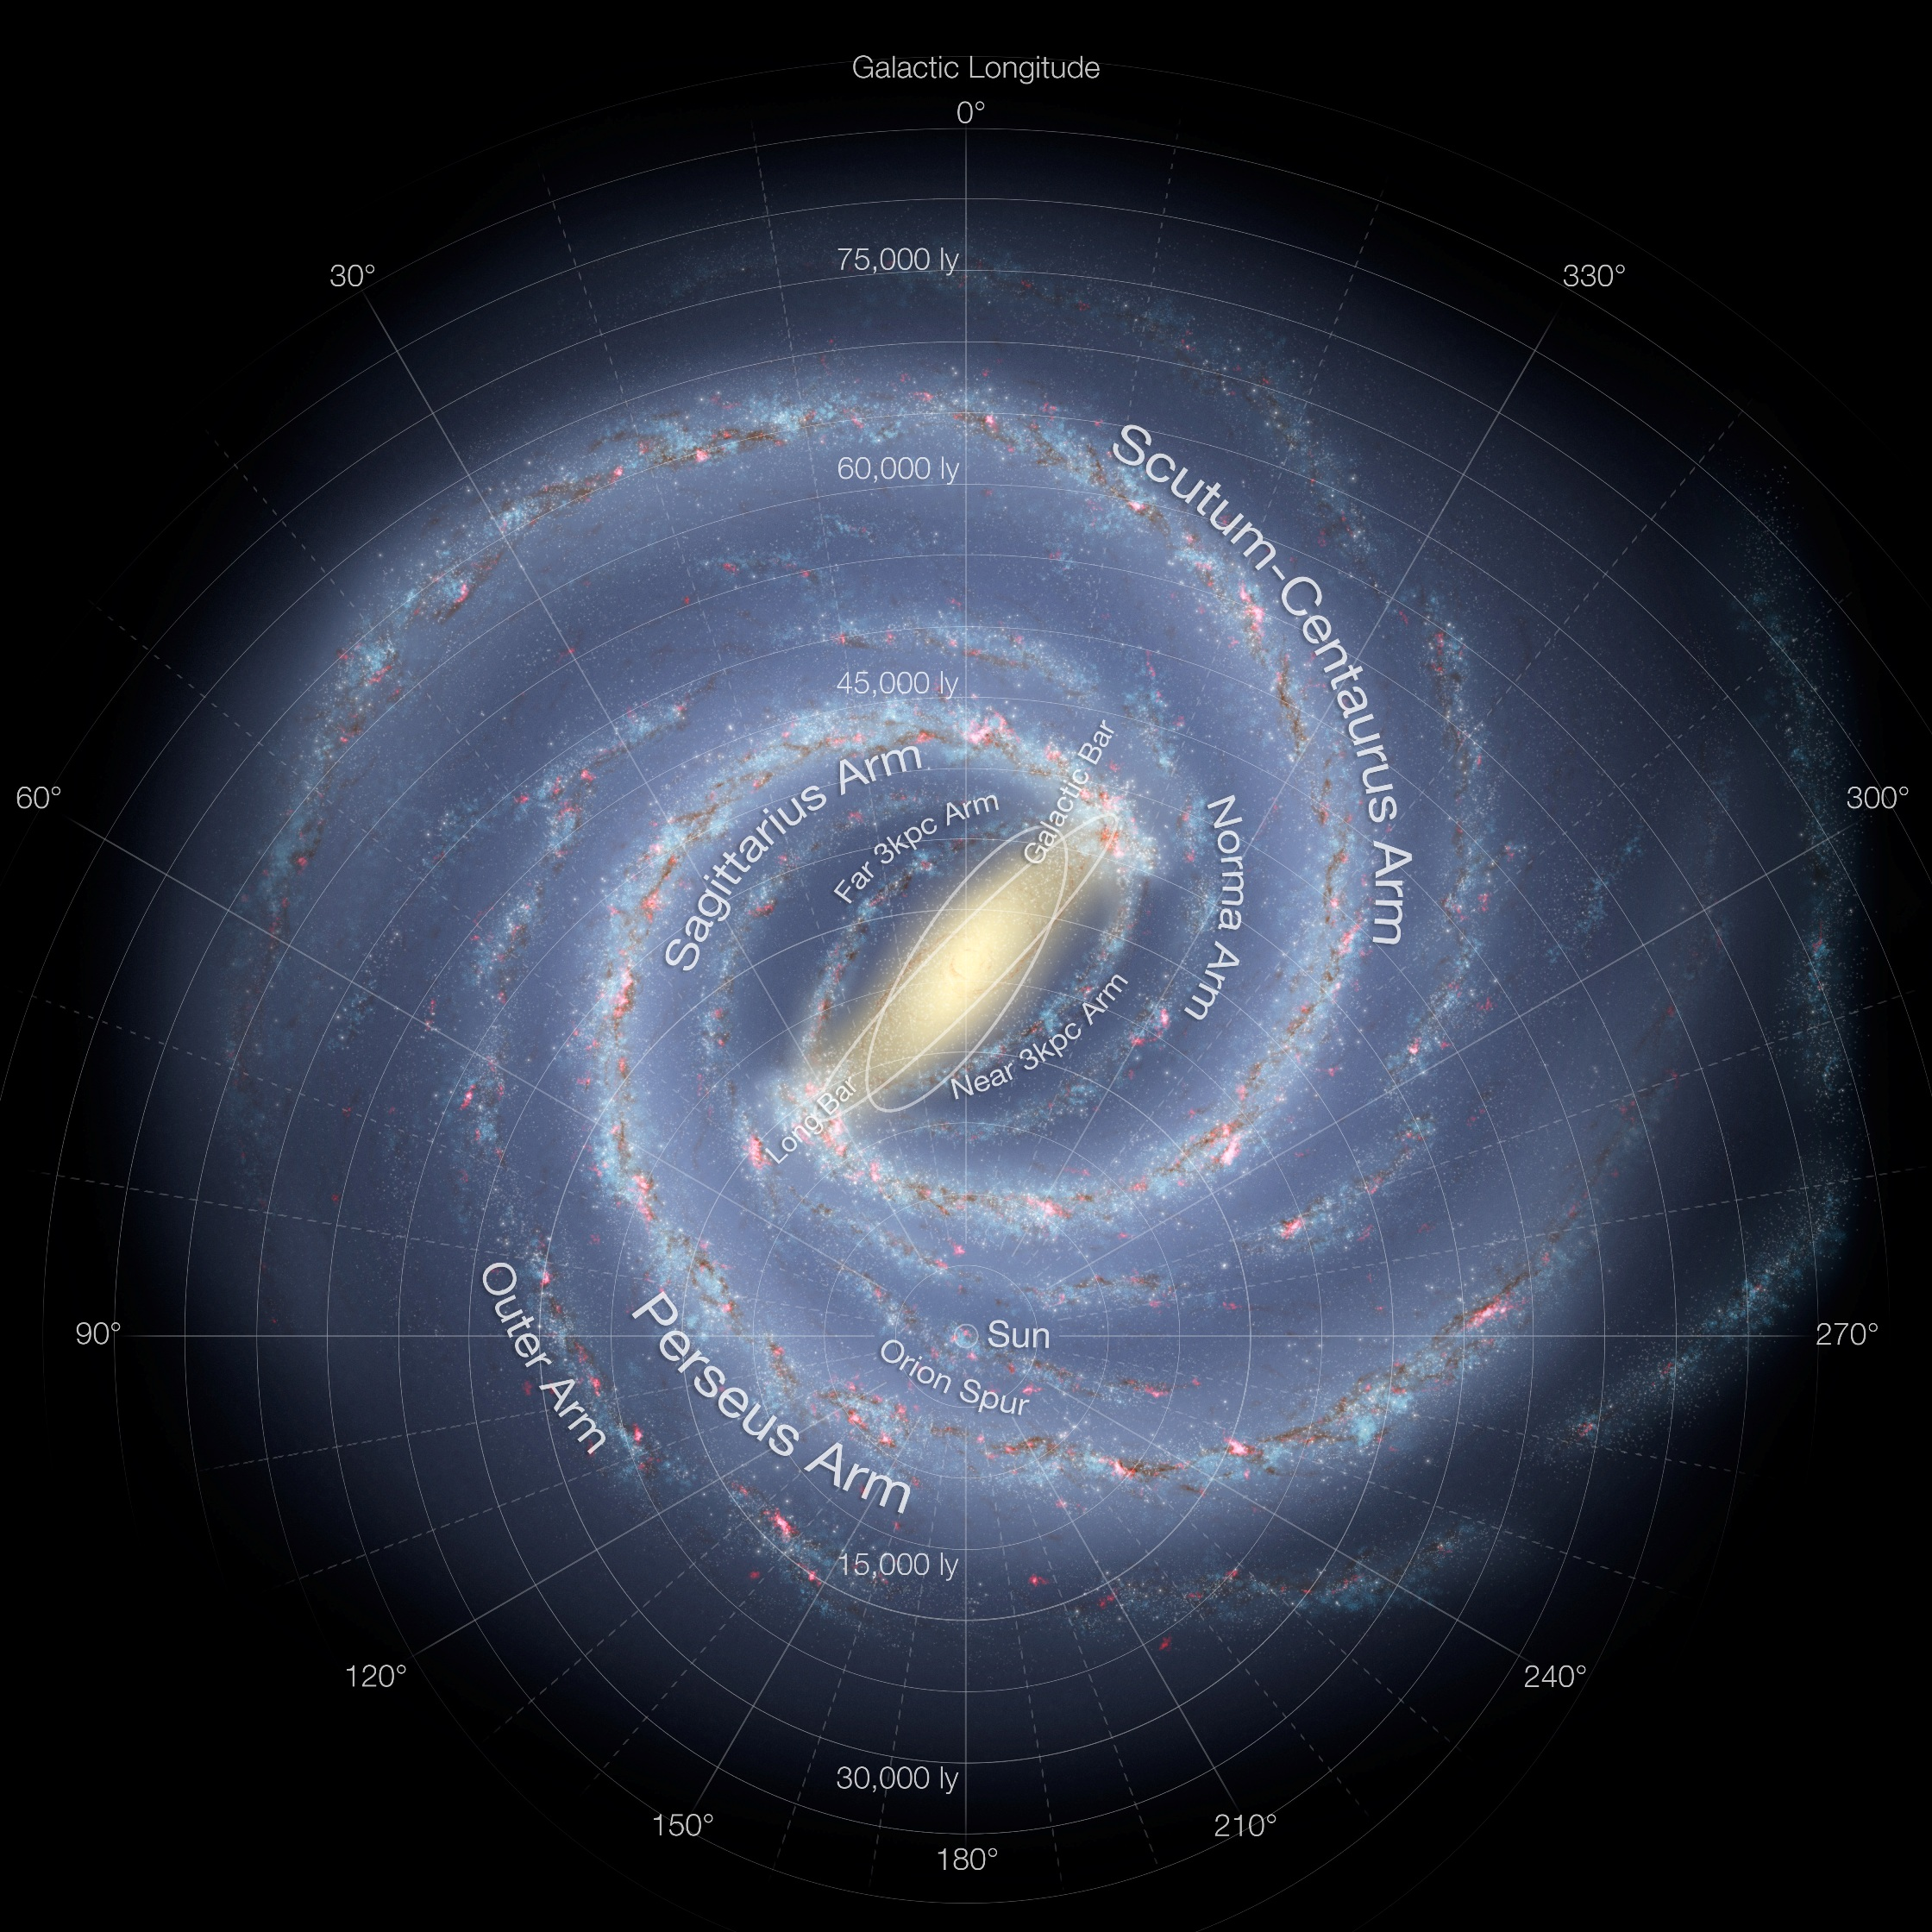 Labeled structure of the Milky Way galaxy